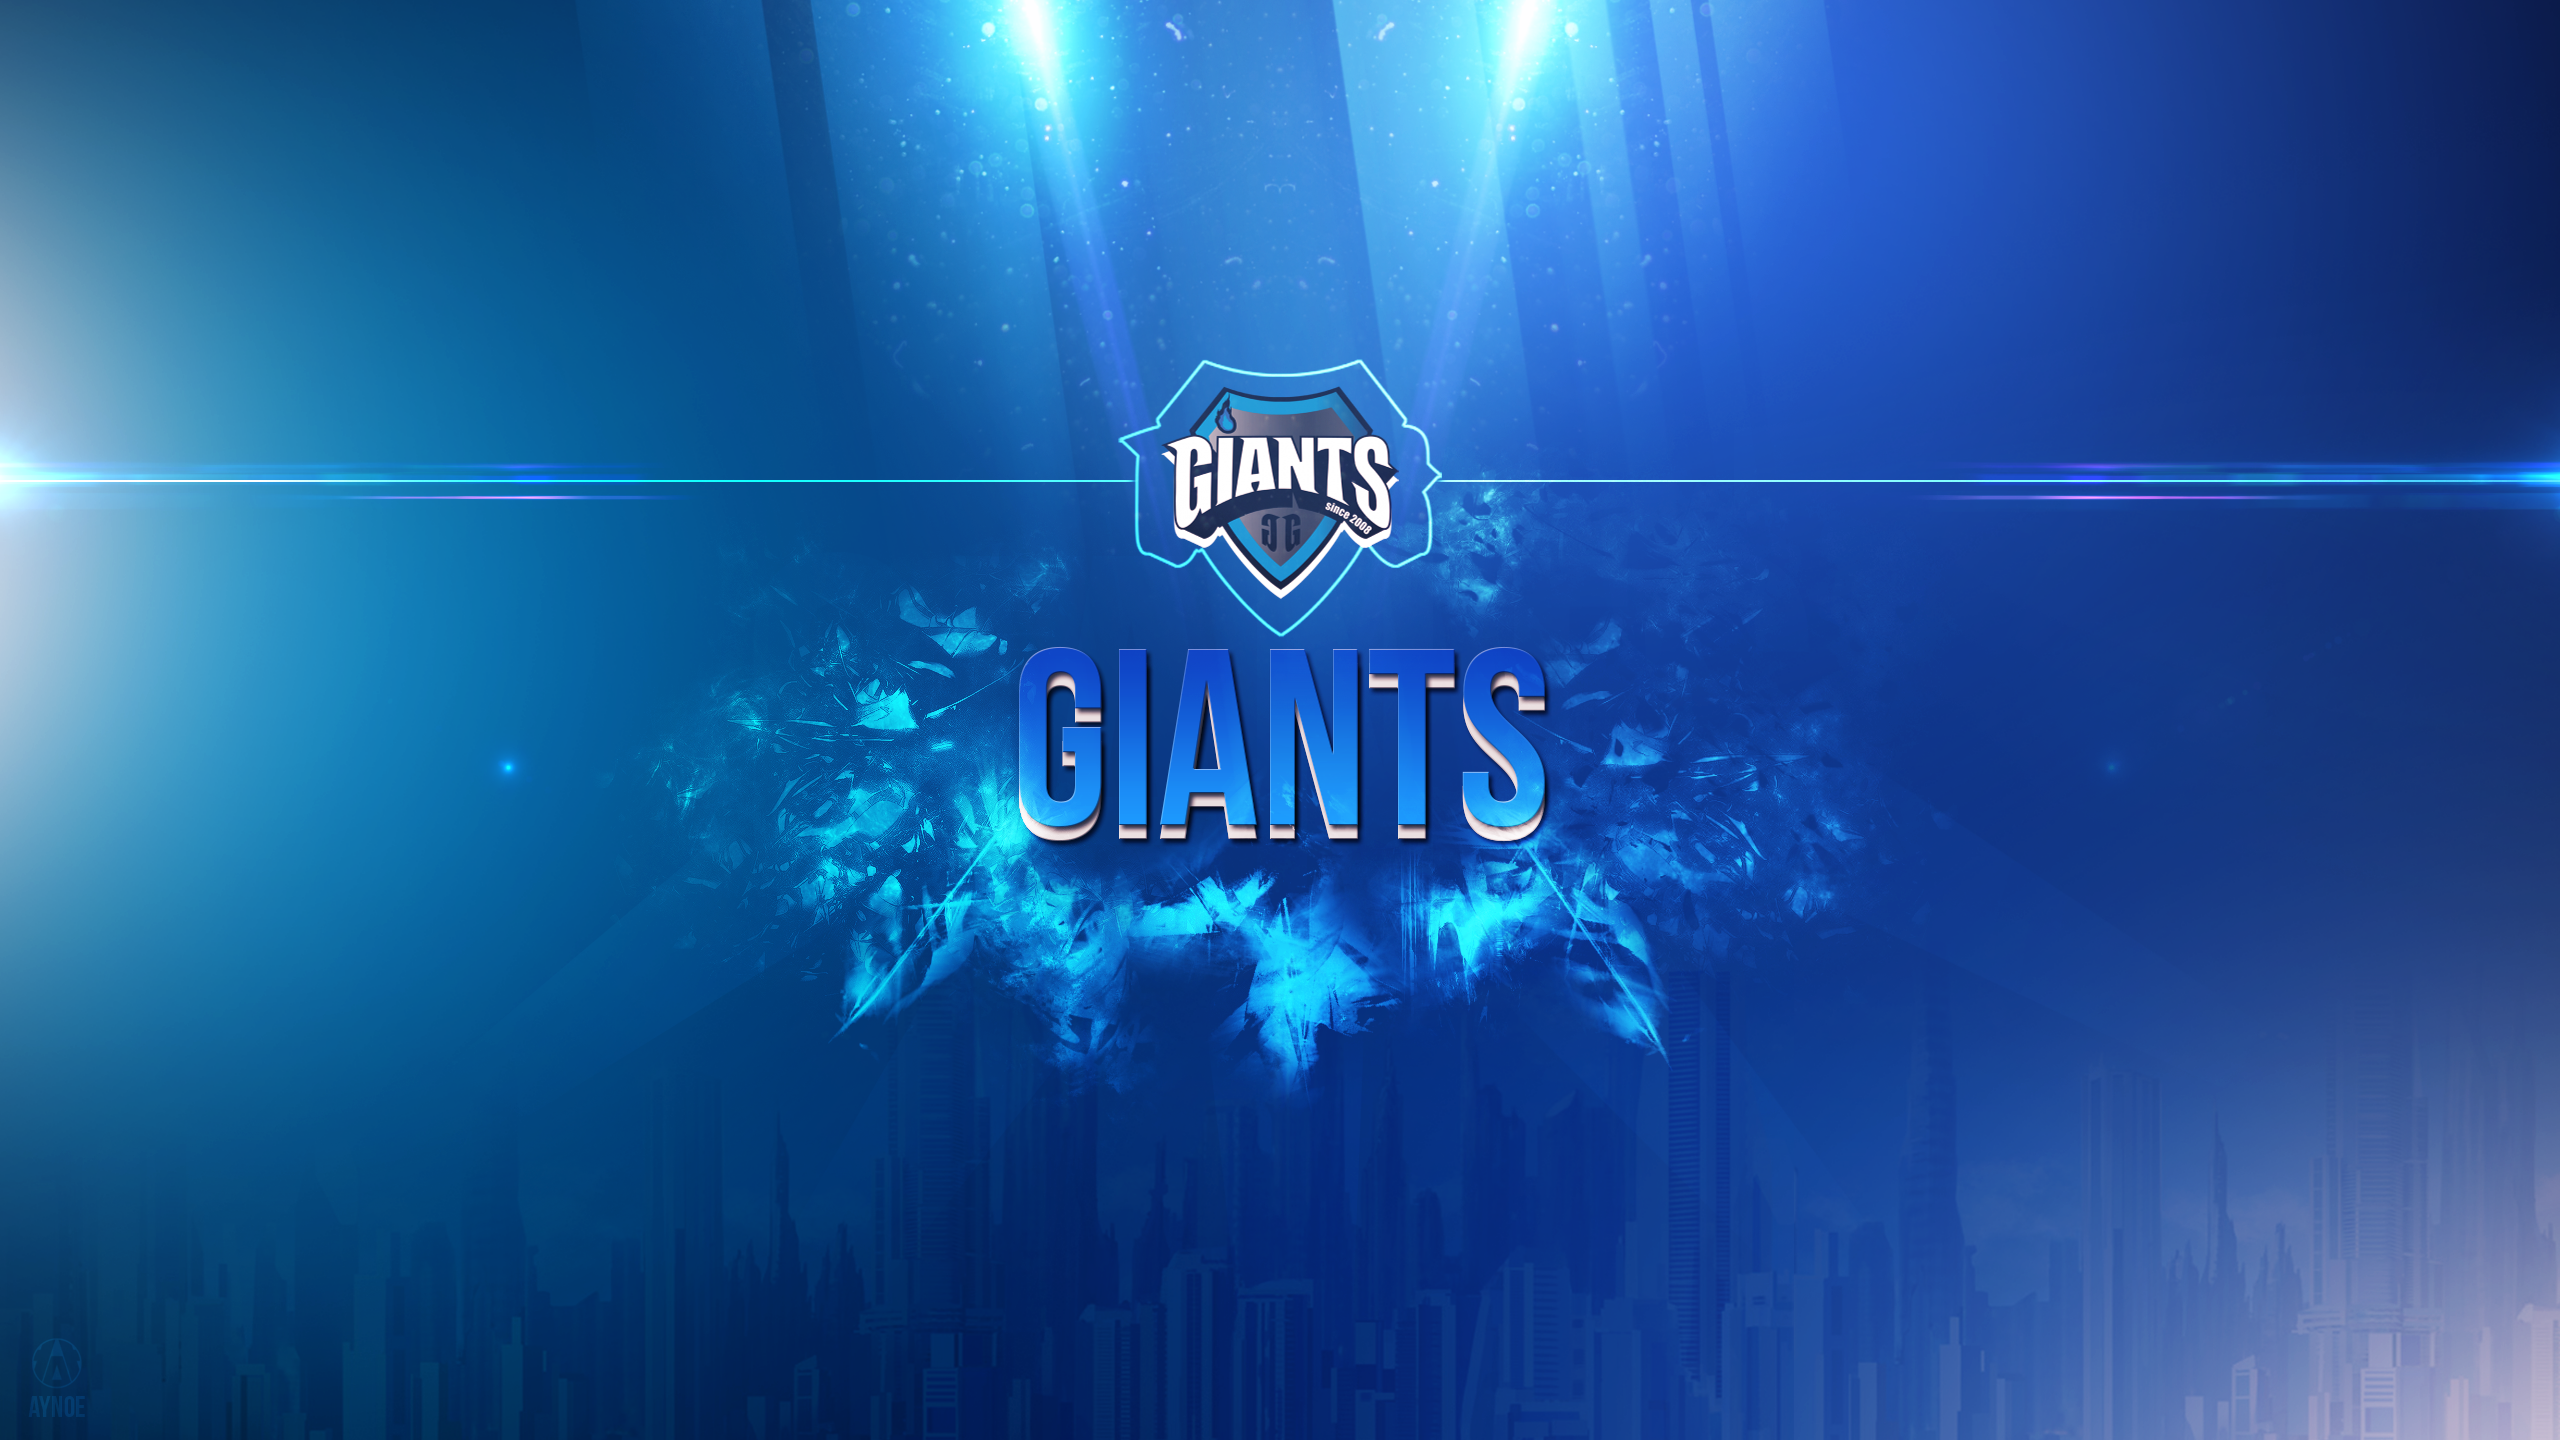 Giants wallpaper